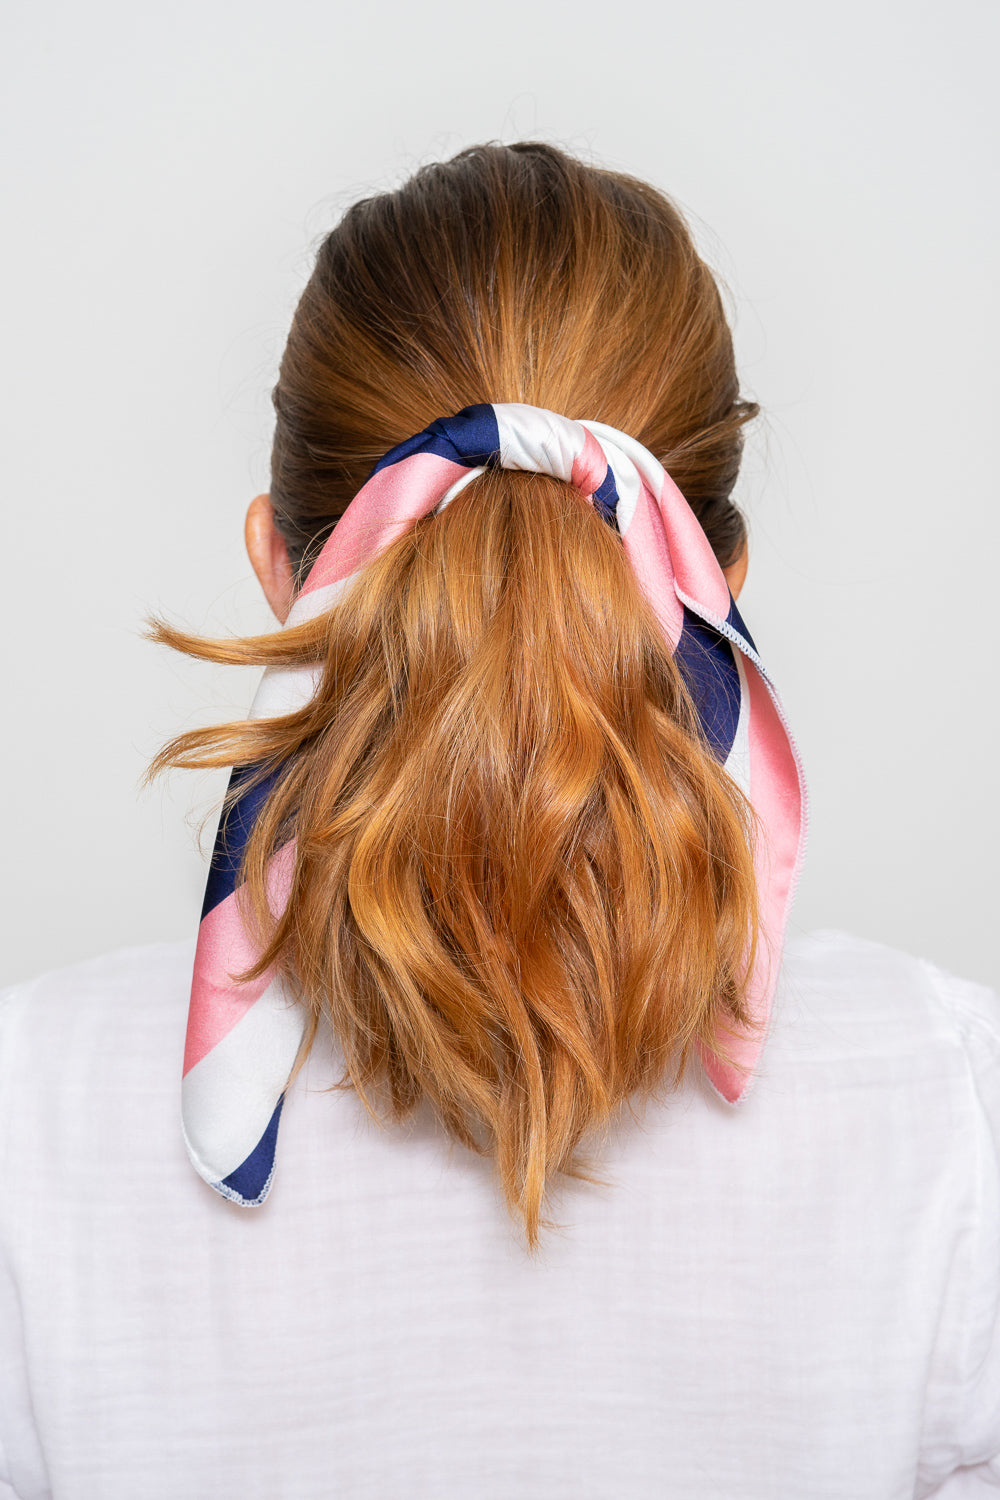 red head with pink navy white hair scarf tied in hair ponytail hoop earrings Janna Conne